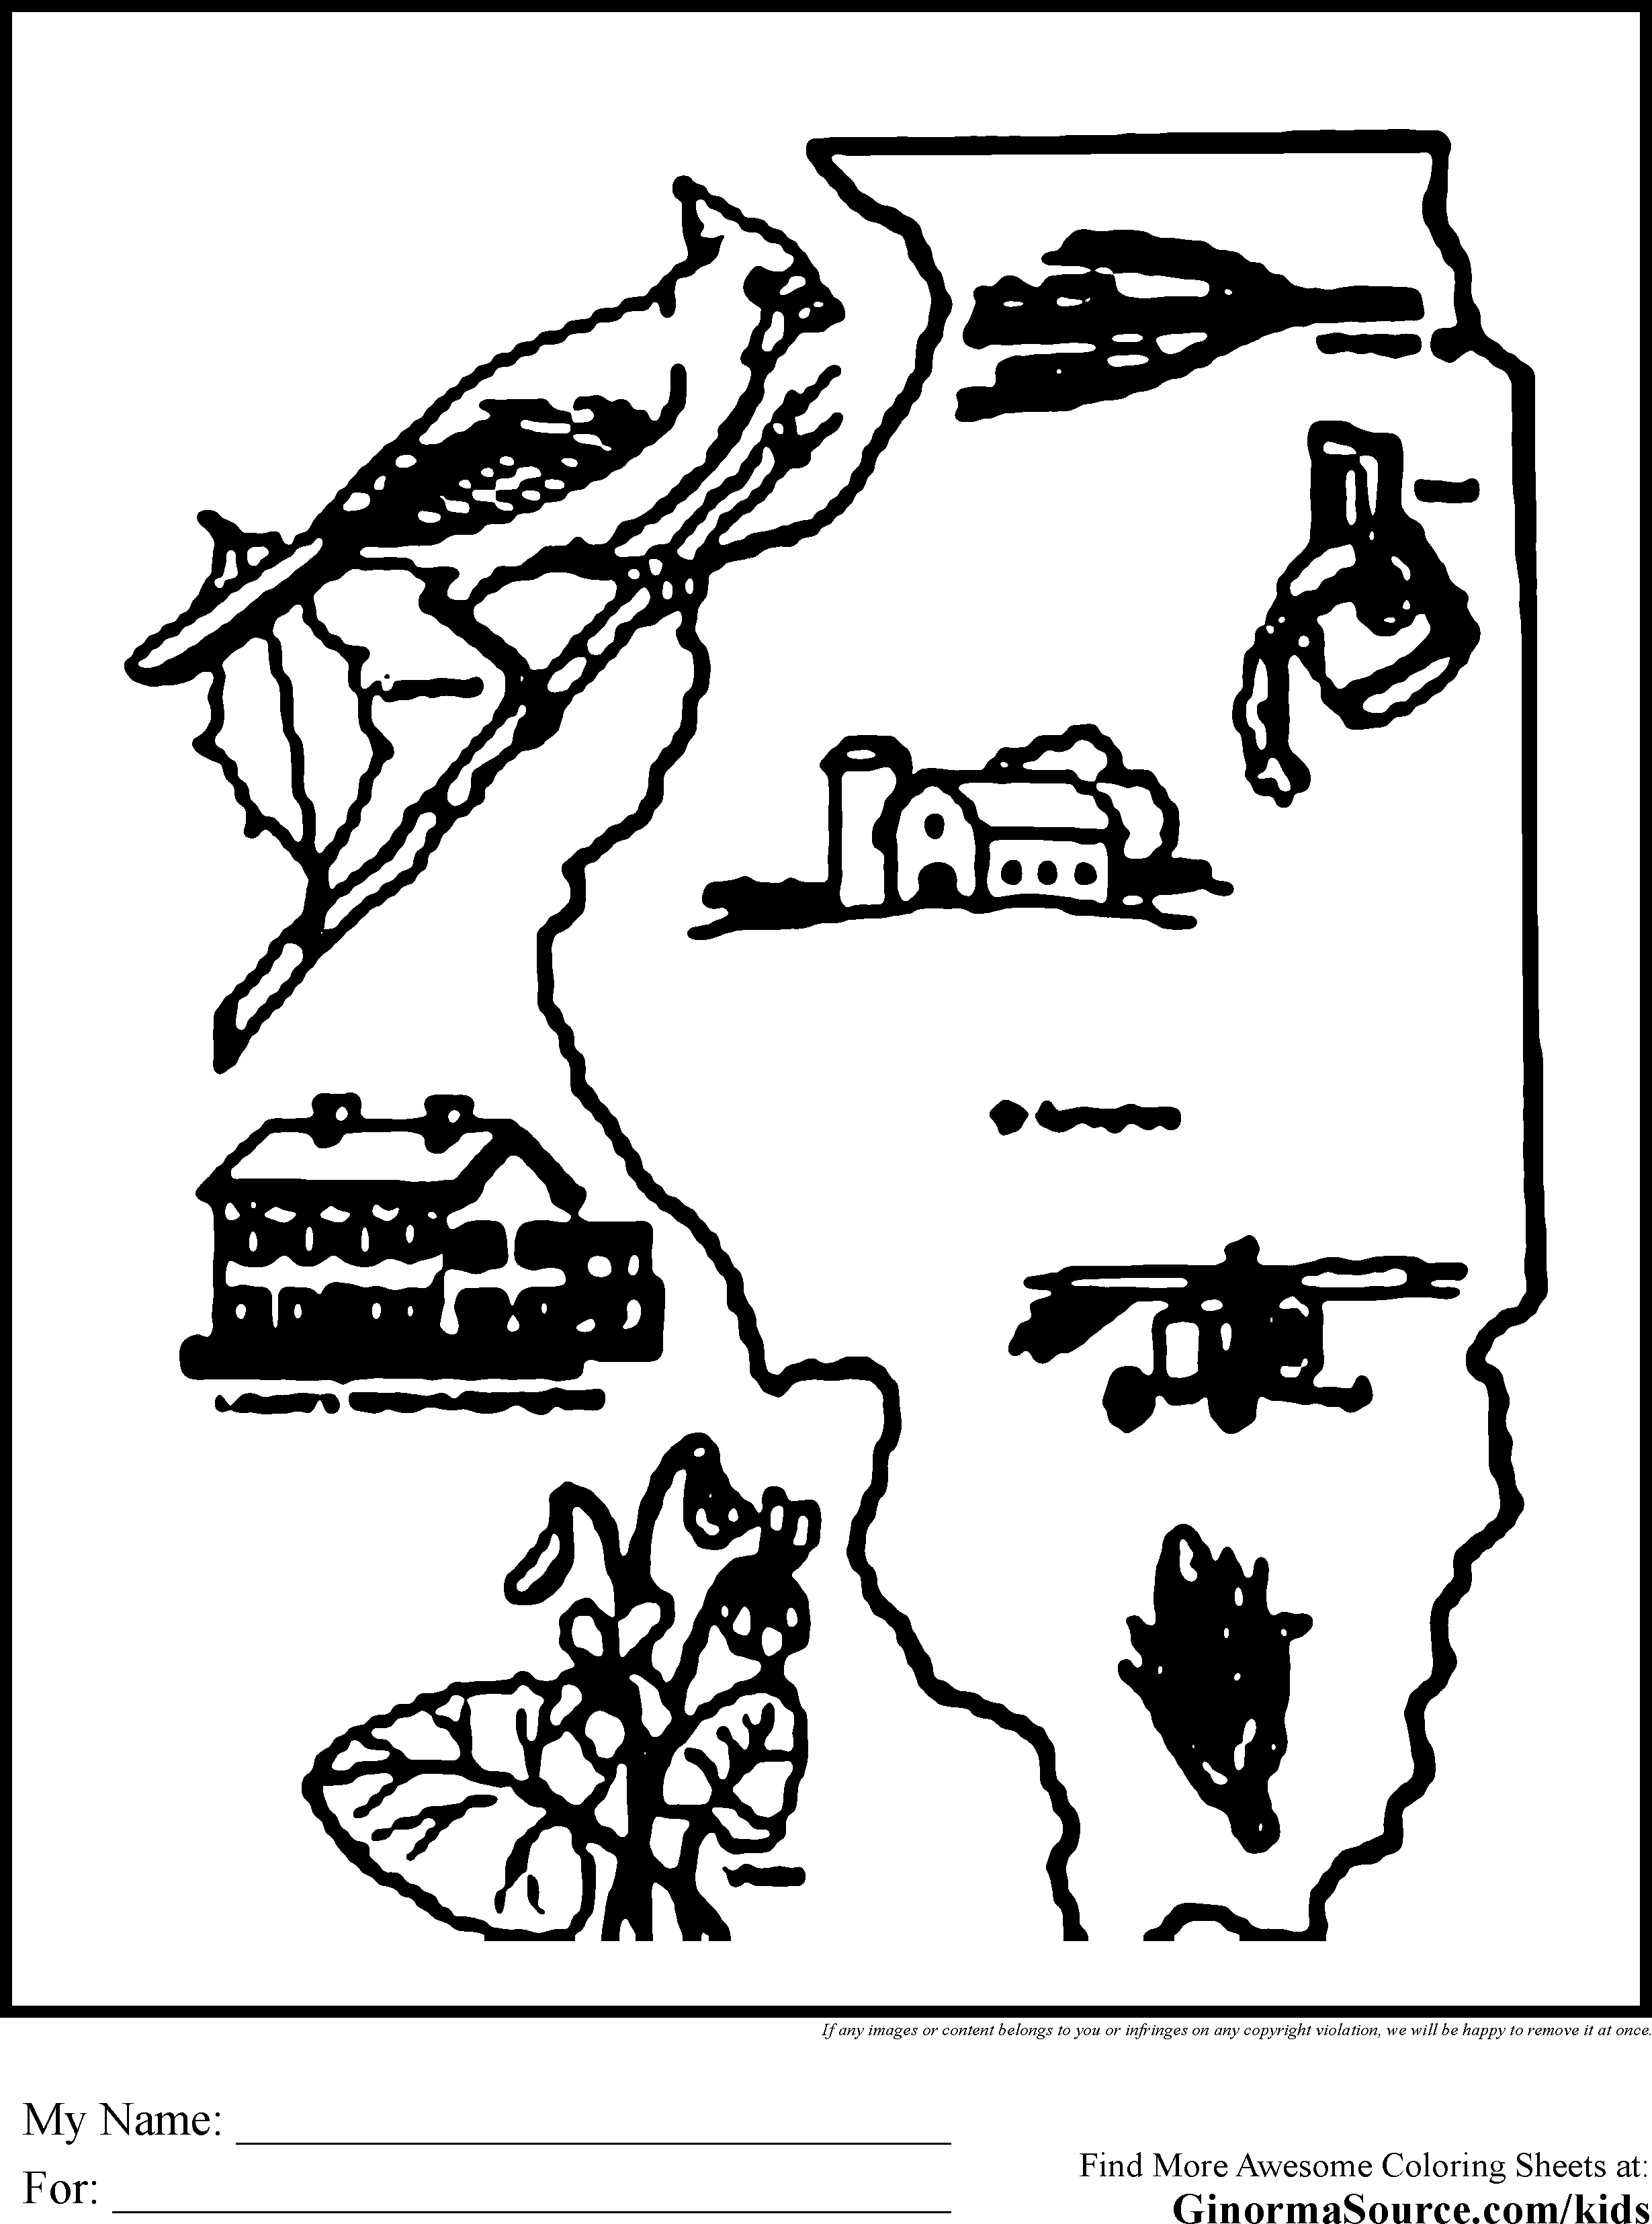 Chicago coloring #7, Download drawings